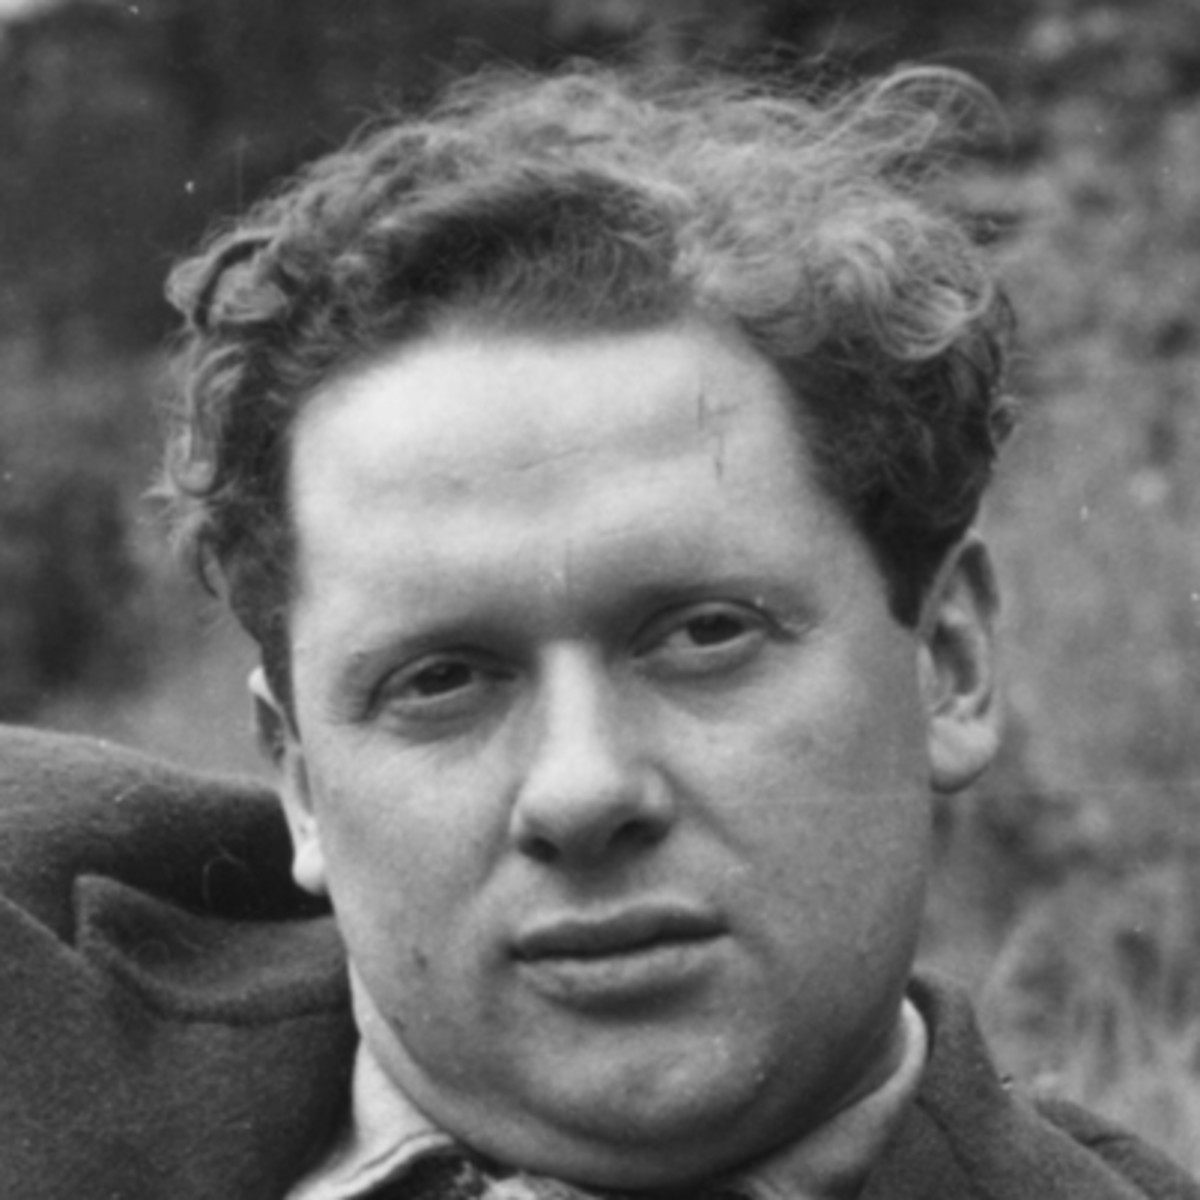 a biography of dylan marlais thomas born in swansea wales Dylan thomas born: october 27, 1914 swansea, carmarthenshire, wales died: november 9, 1953 welsh childhood dylan marlais thomas was born in the welsh seaport of swansea, carmarthenshire, wales, on october 27, 1914 his father dylan thomas: the biography washington, dc: counterpoint.